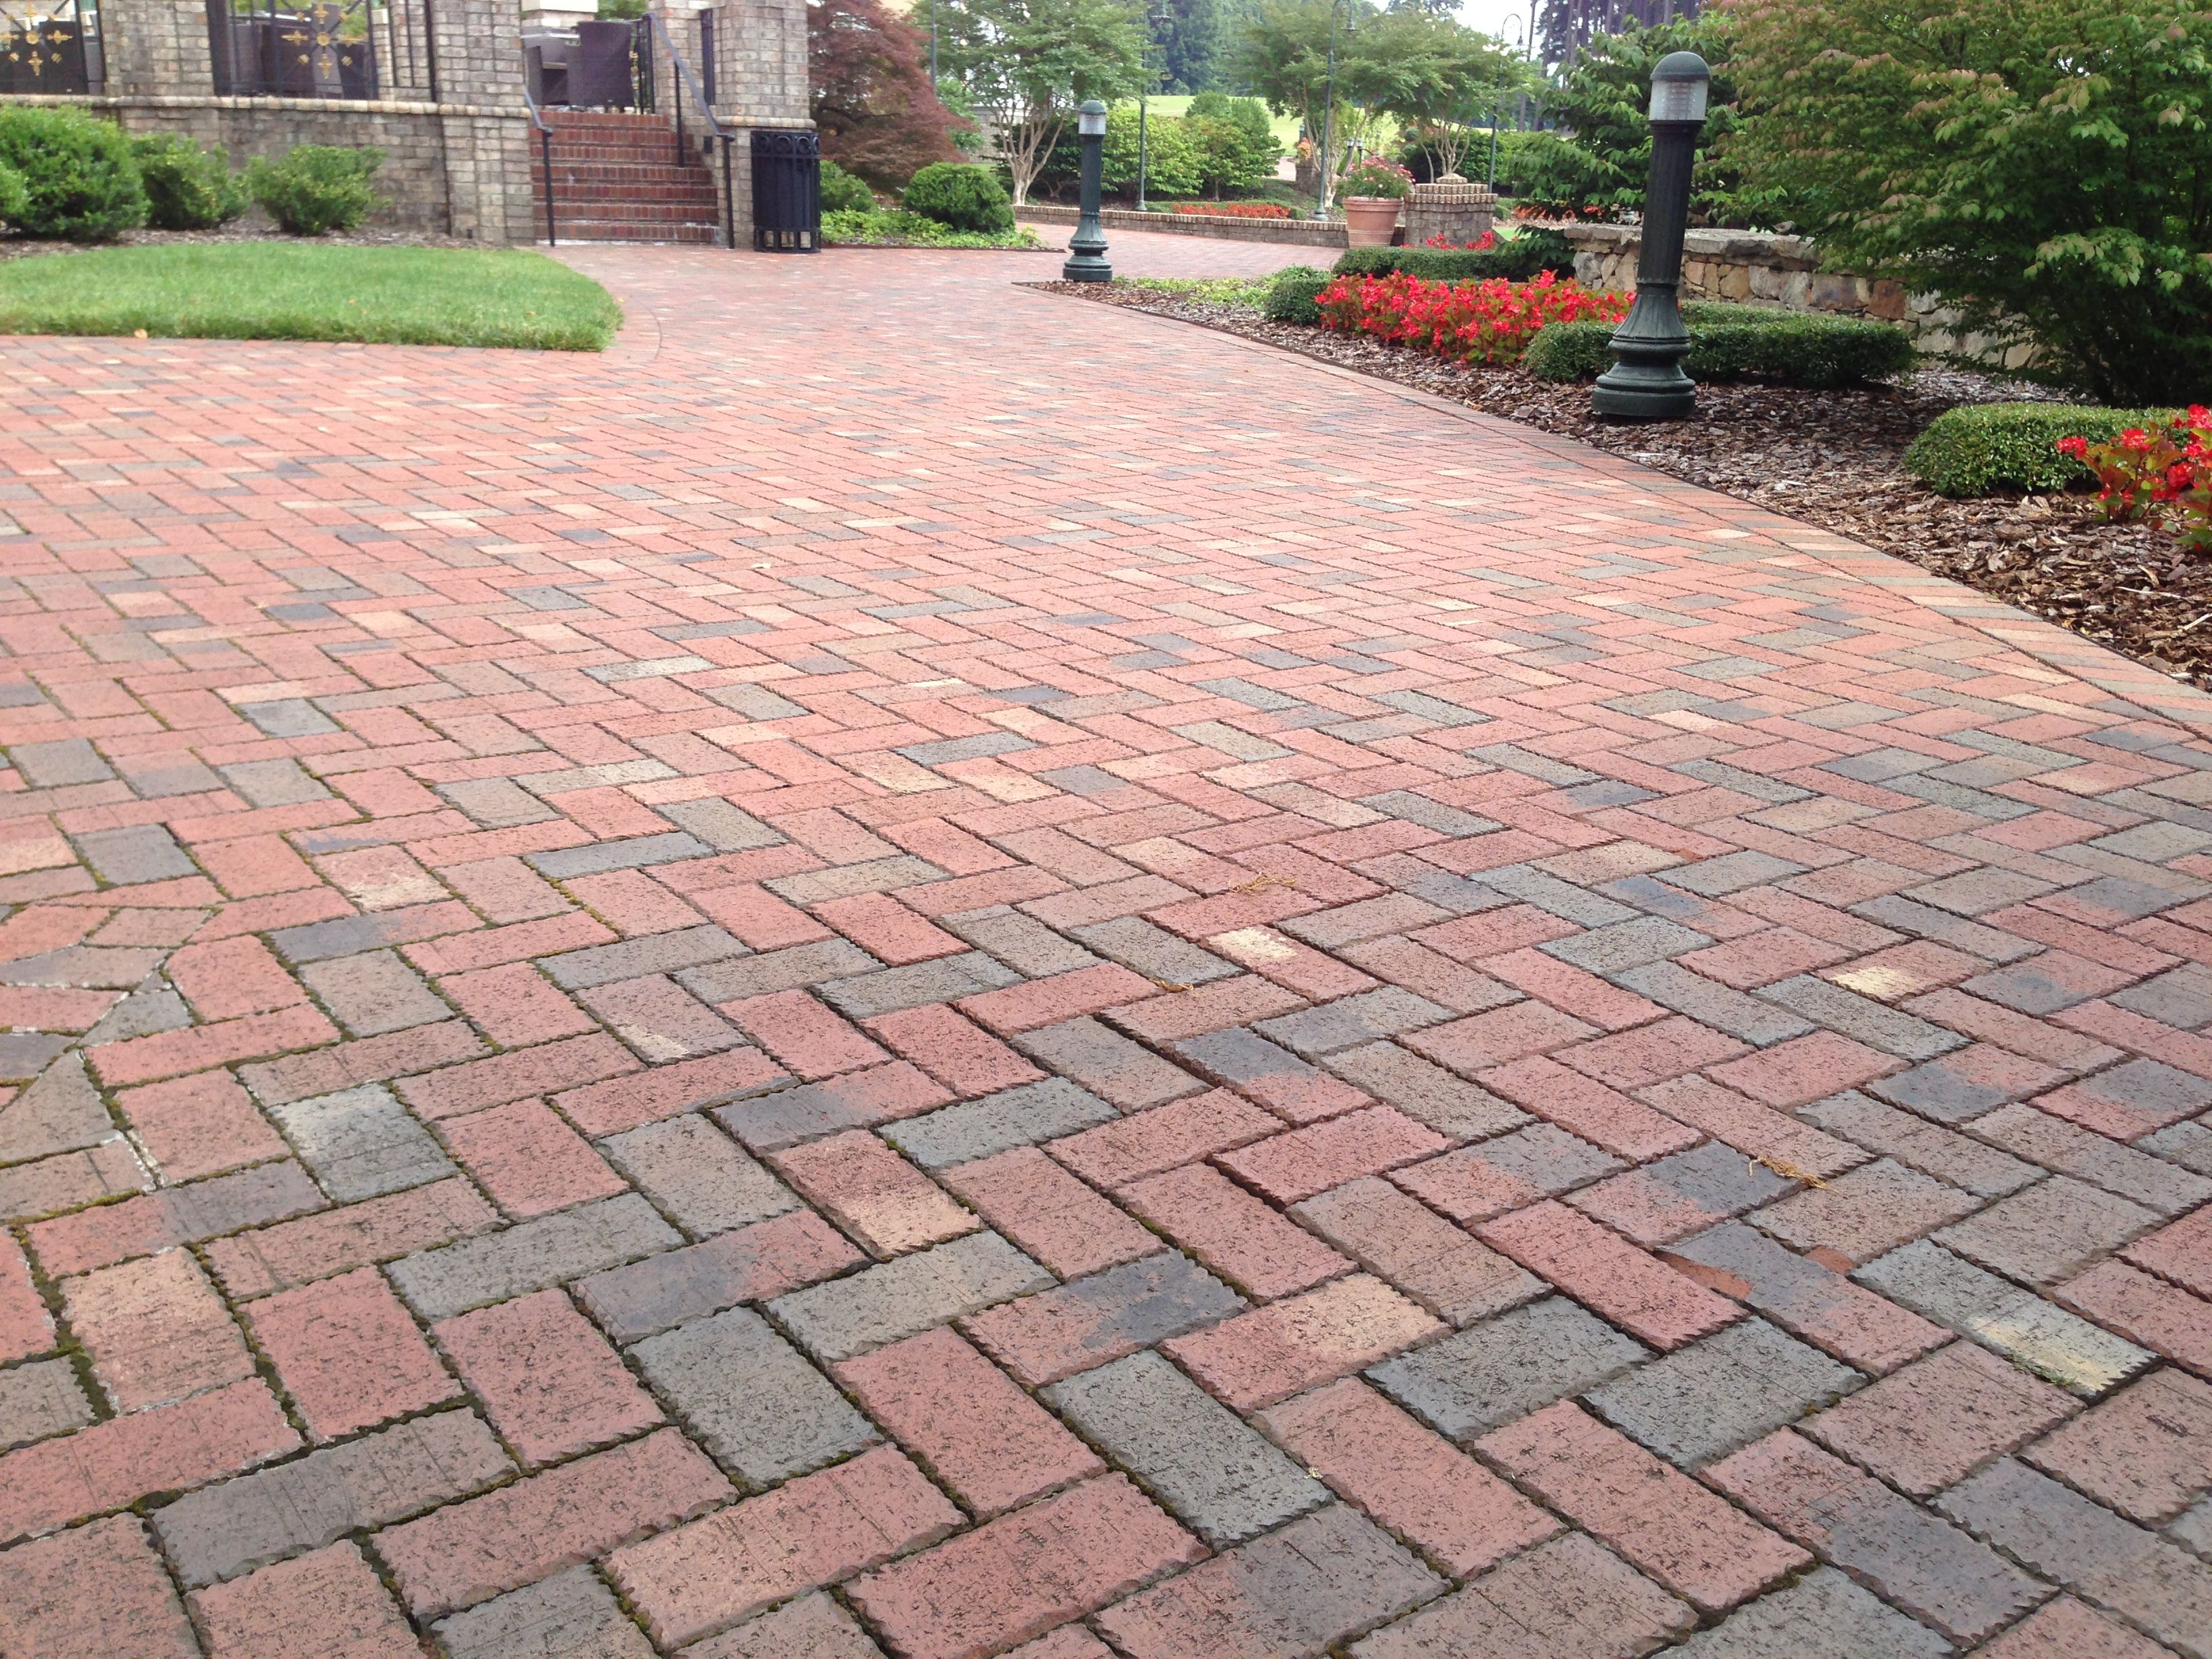 This Long Brick Driveway Is Made With Pine Hall Brick Old Towne Pavers Backyard Landscaping Brick Paver Driveway Backyard Retreat